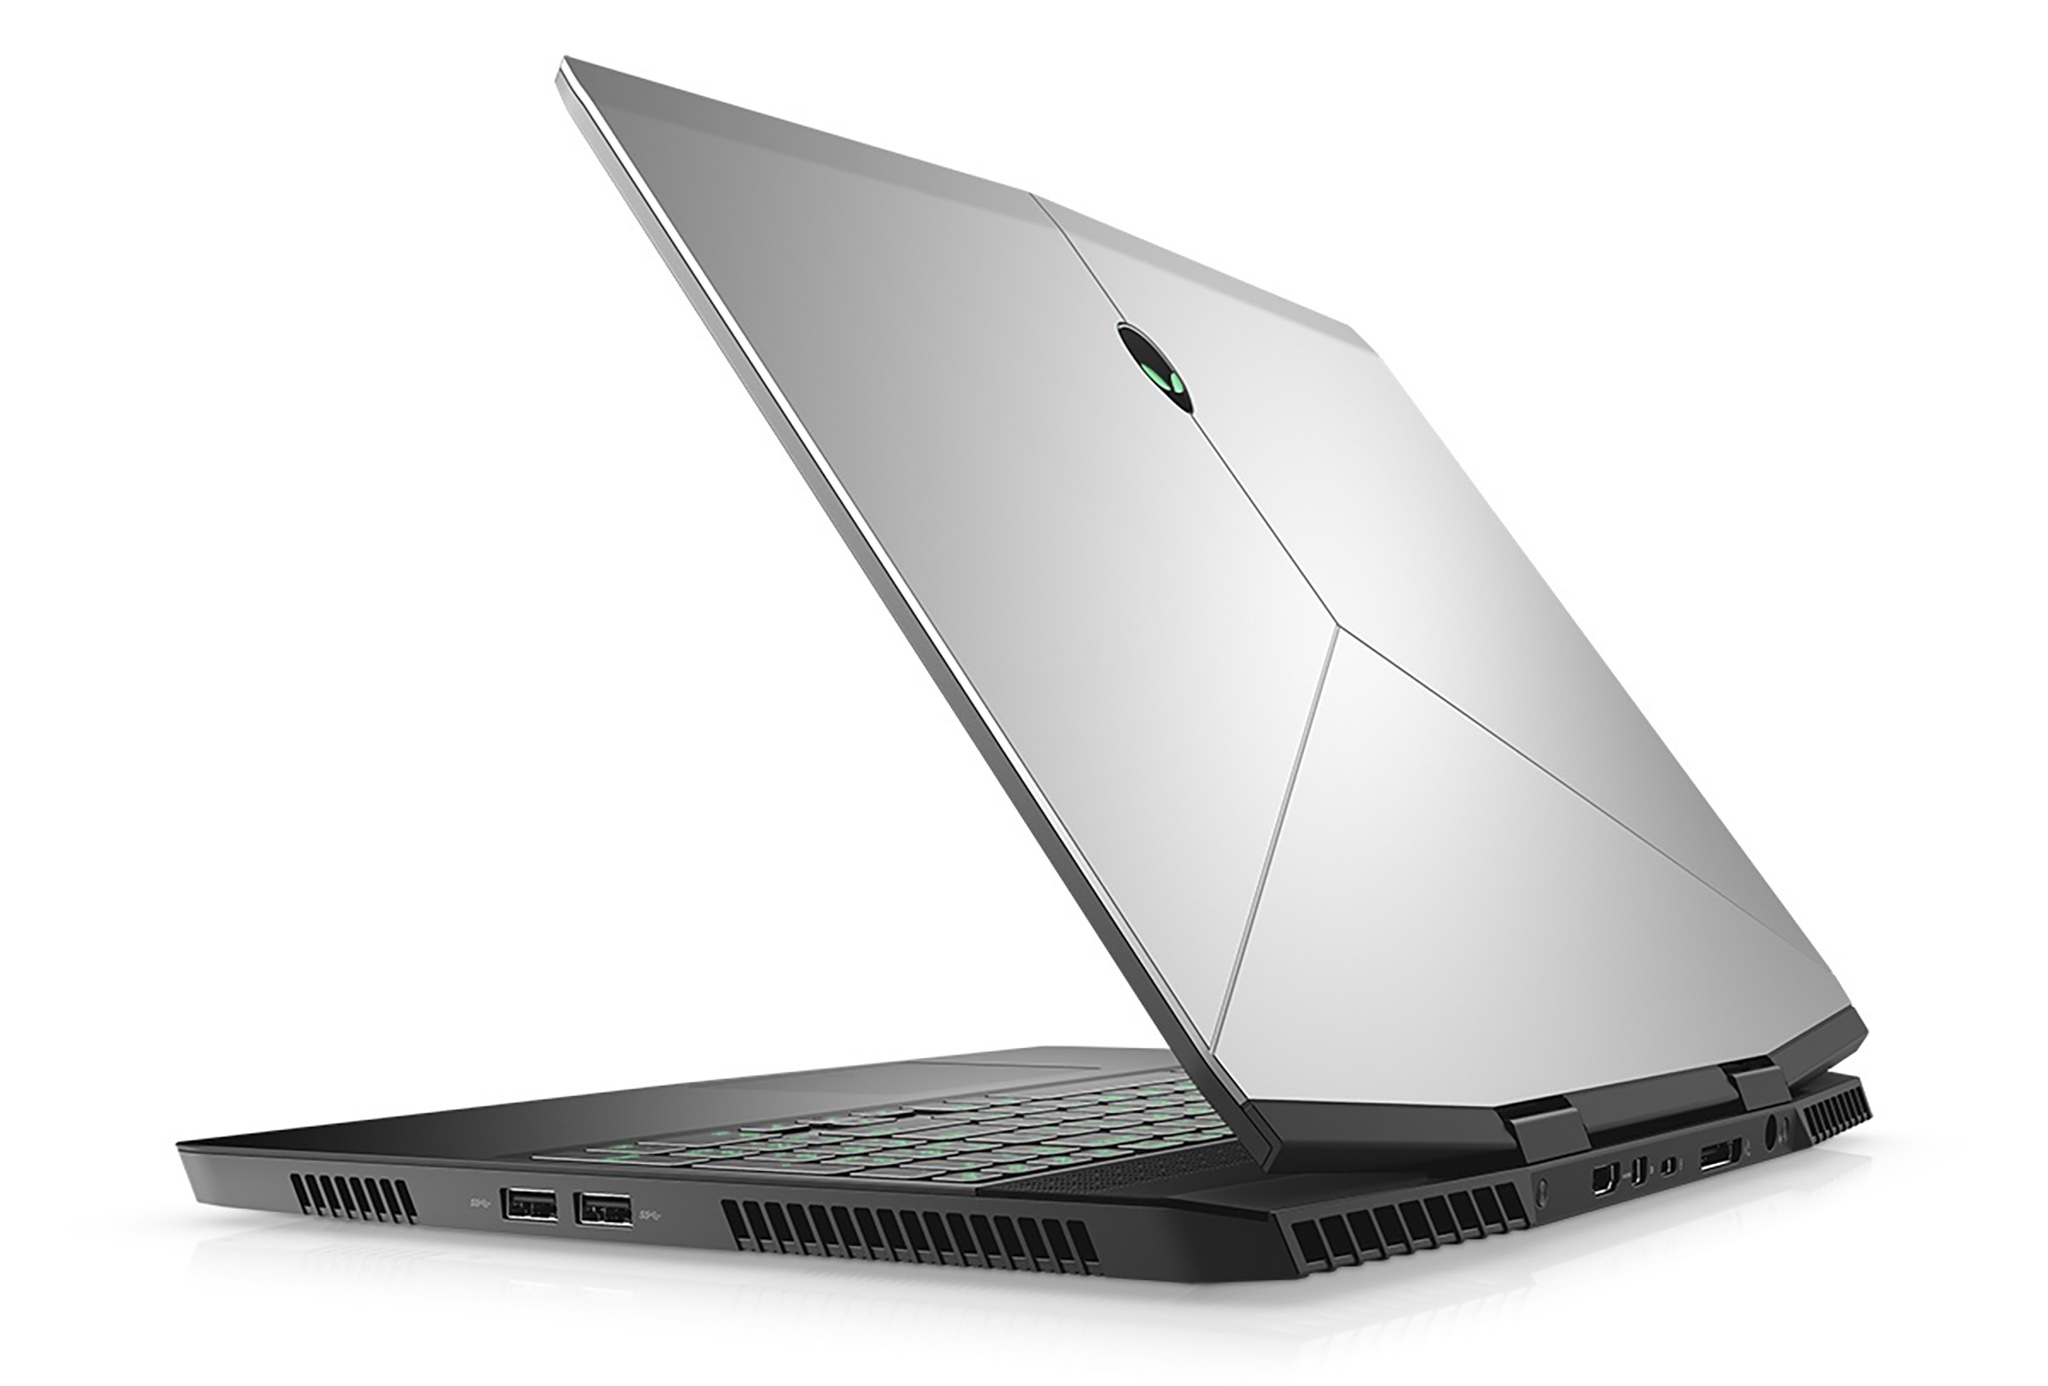 Dell Alienware M15 R3 2020 15.6 inch FHD Windows 10